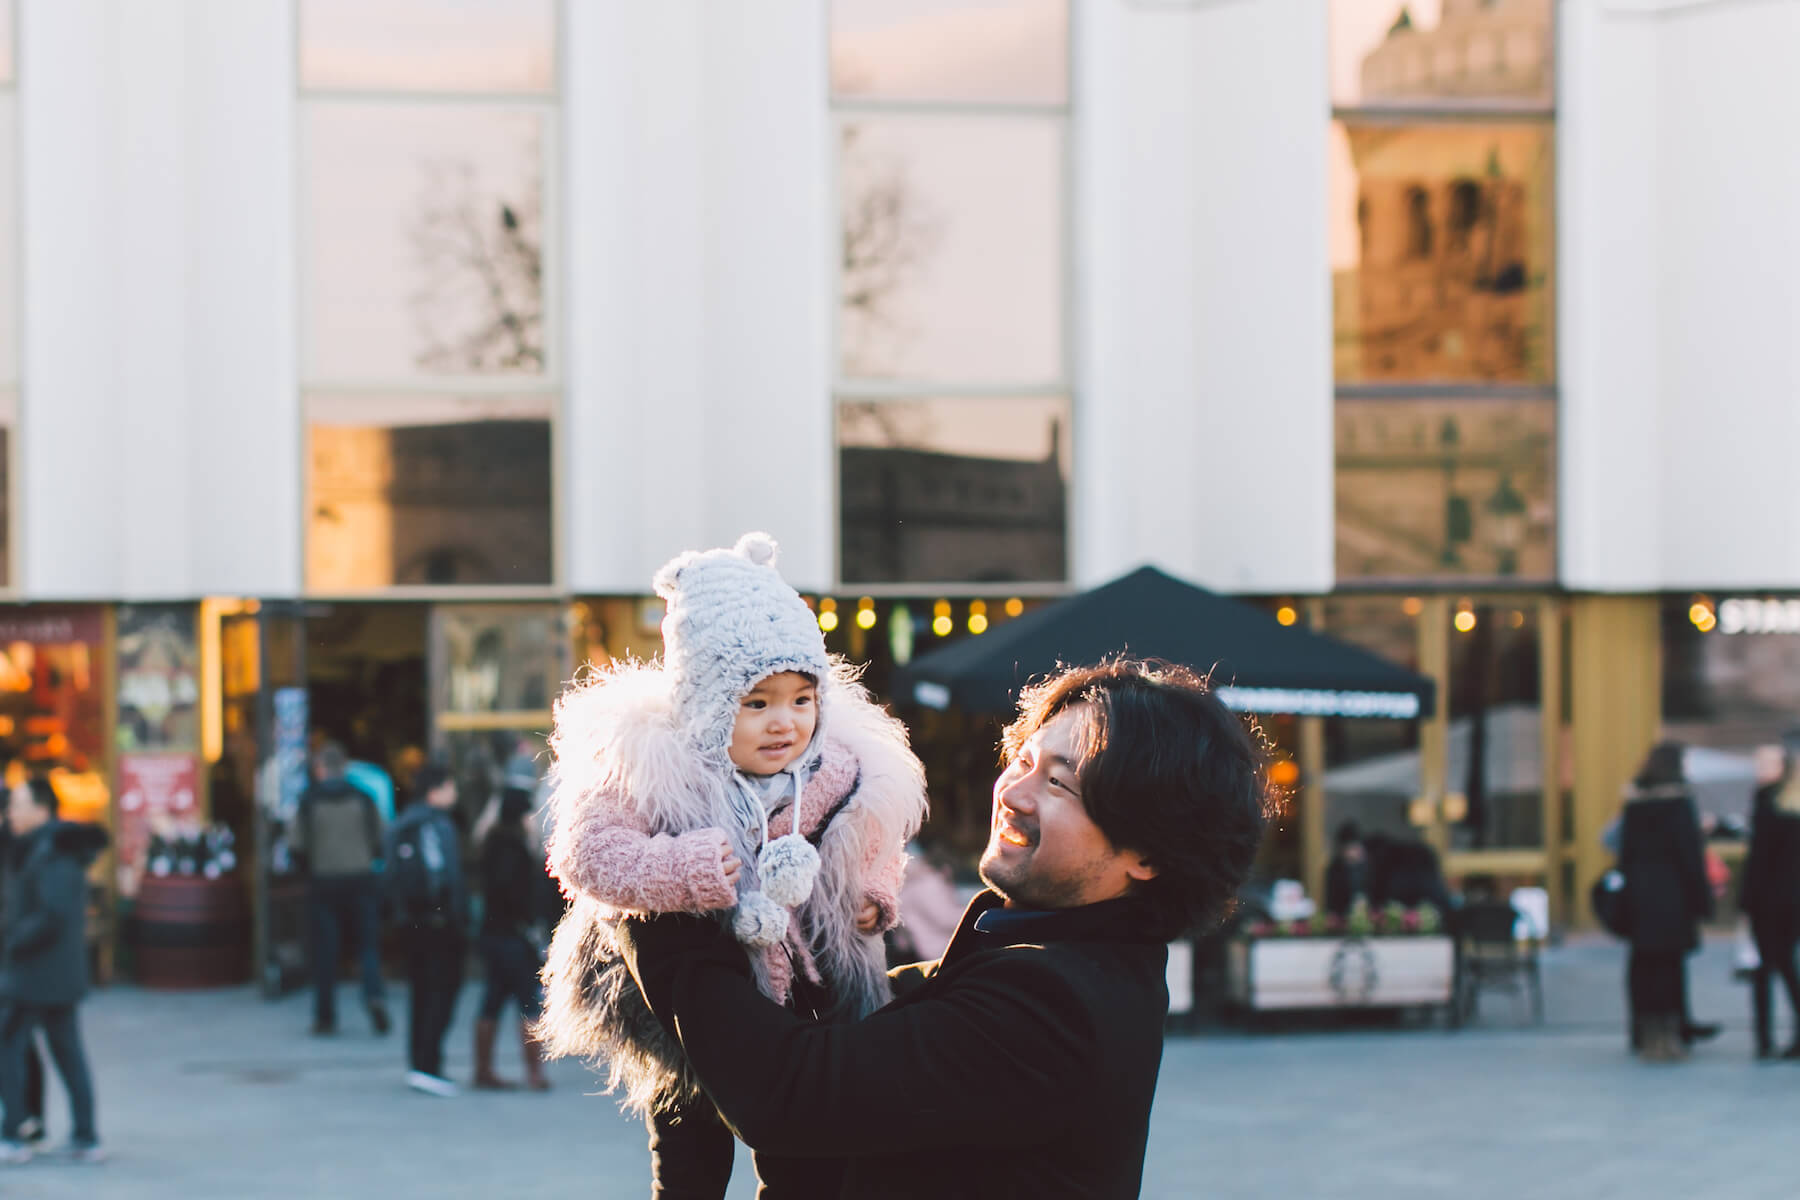 father holding a baby girl up in the air in a city square in Budapest, Hungary